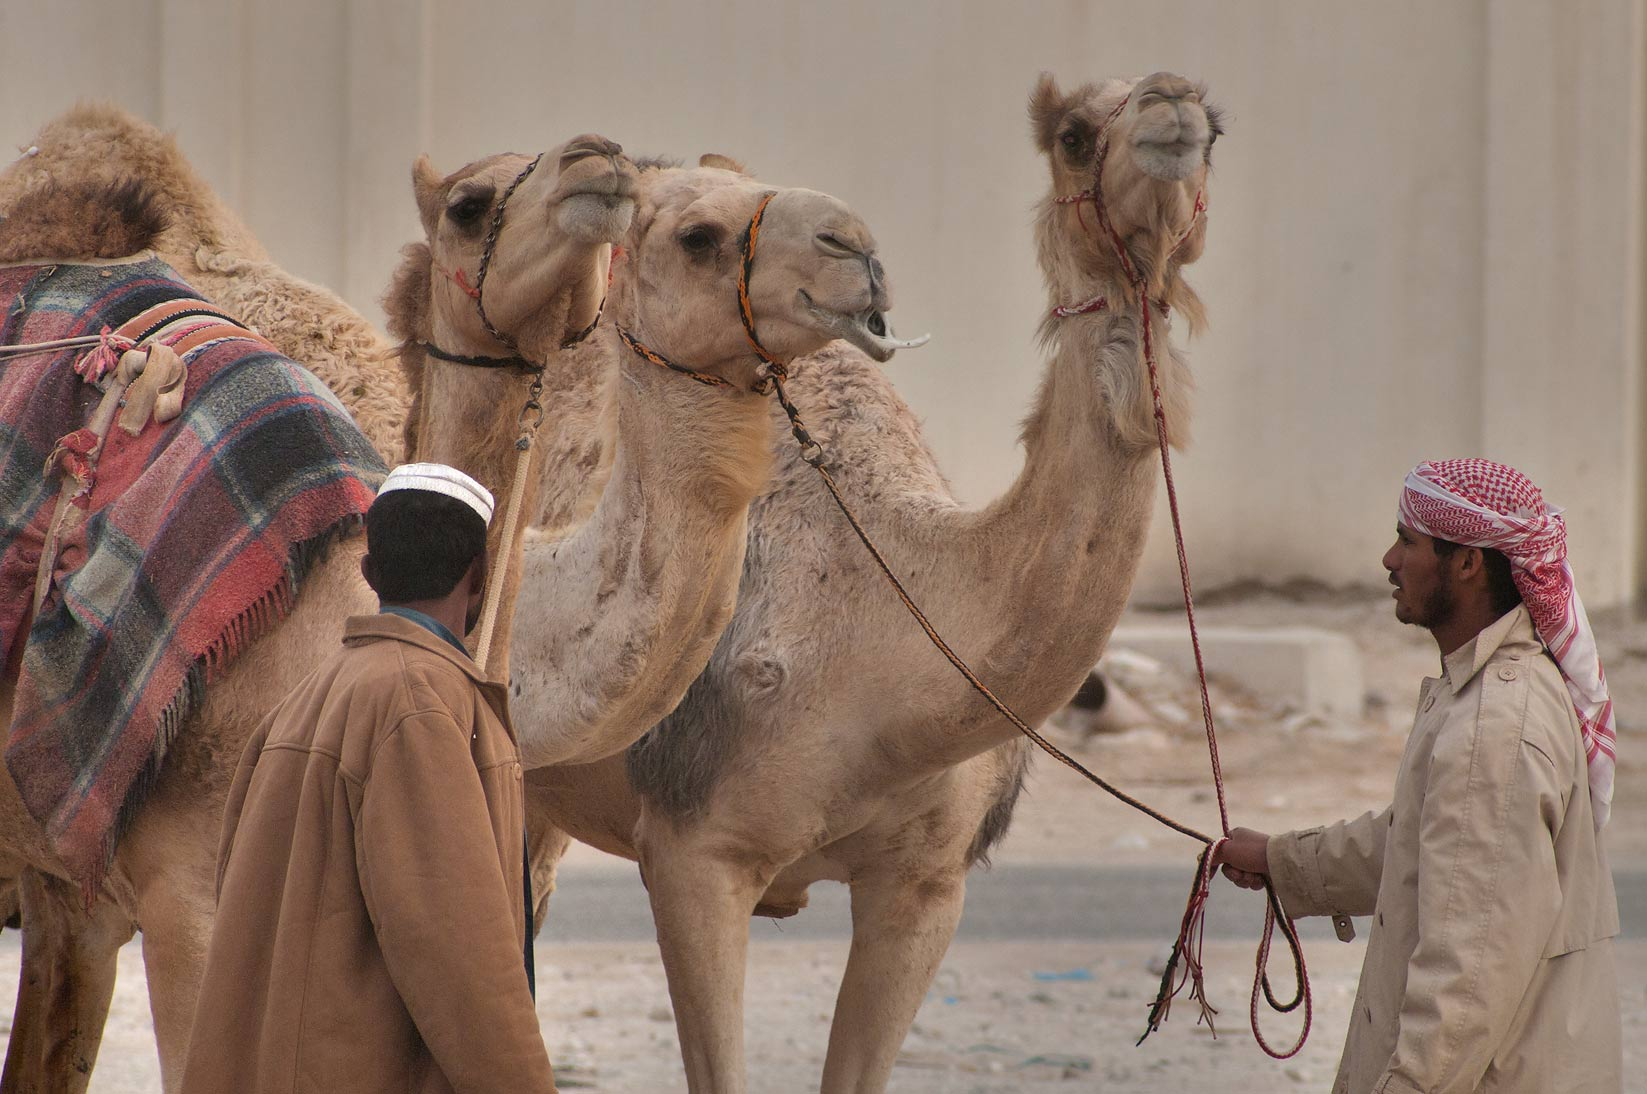 A person with camels in Camel Market, wholesale markets area. Doha, Qatar